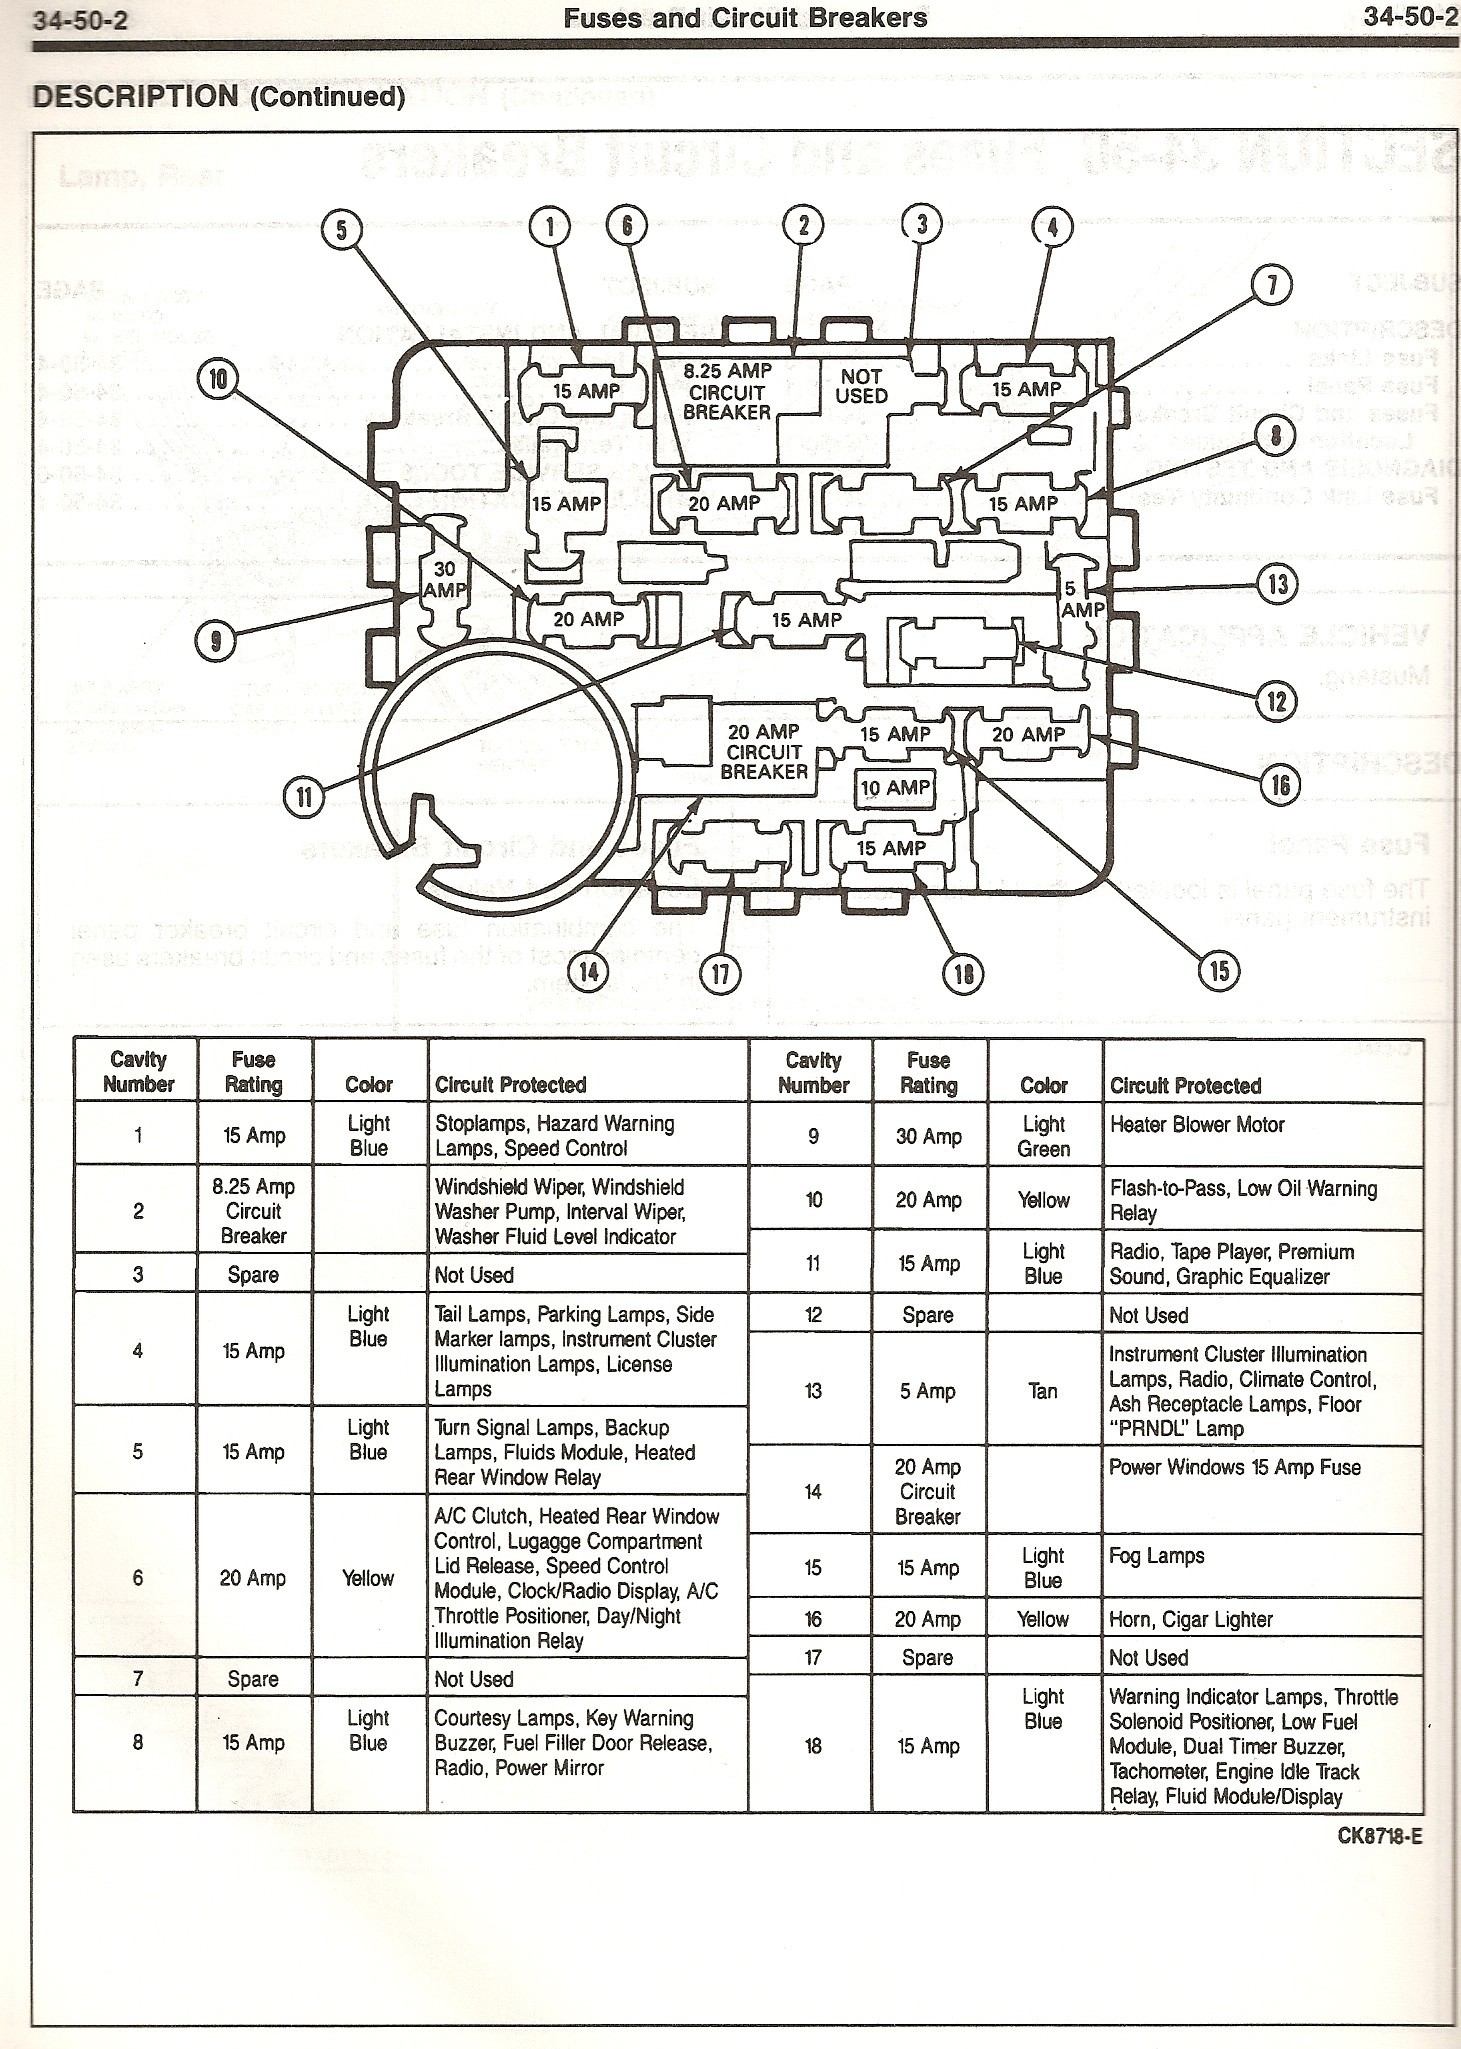 1997 Ford F150 4 6 Engine Diagram 03 Expedition 6l Pcv Hose F 150 Fuse Box Diagrams Wiring Of